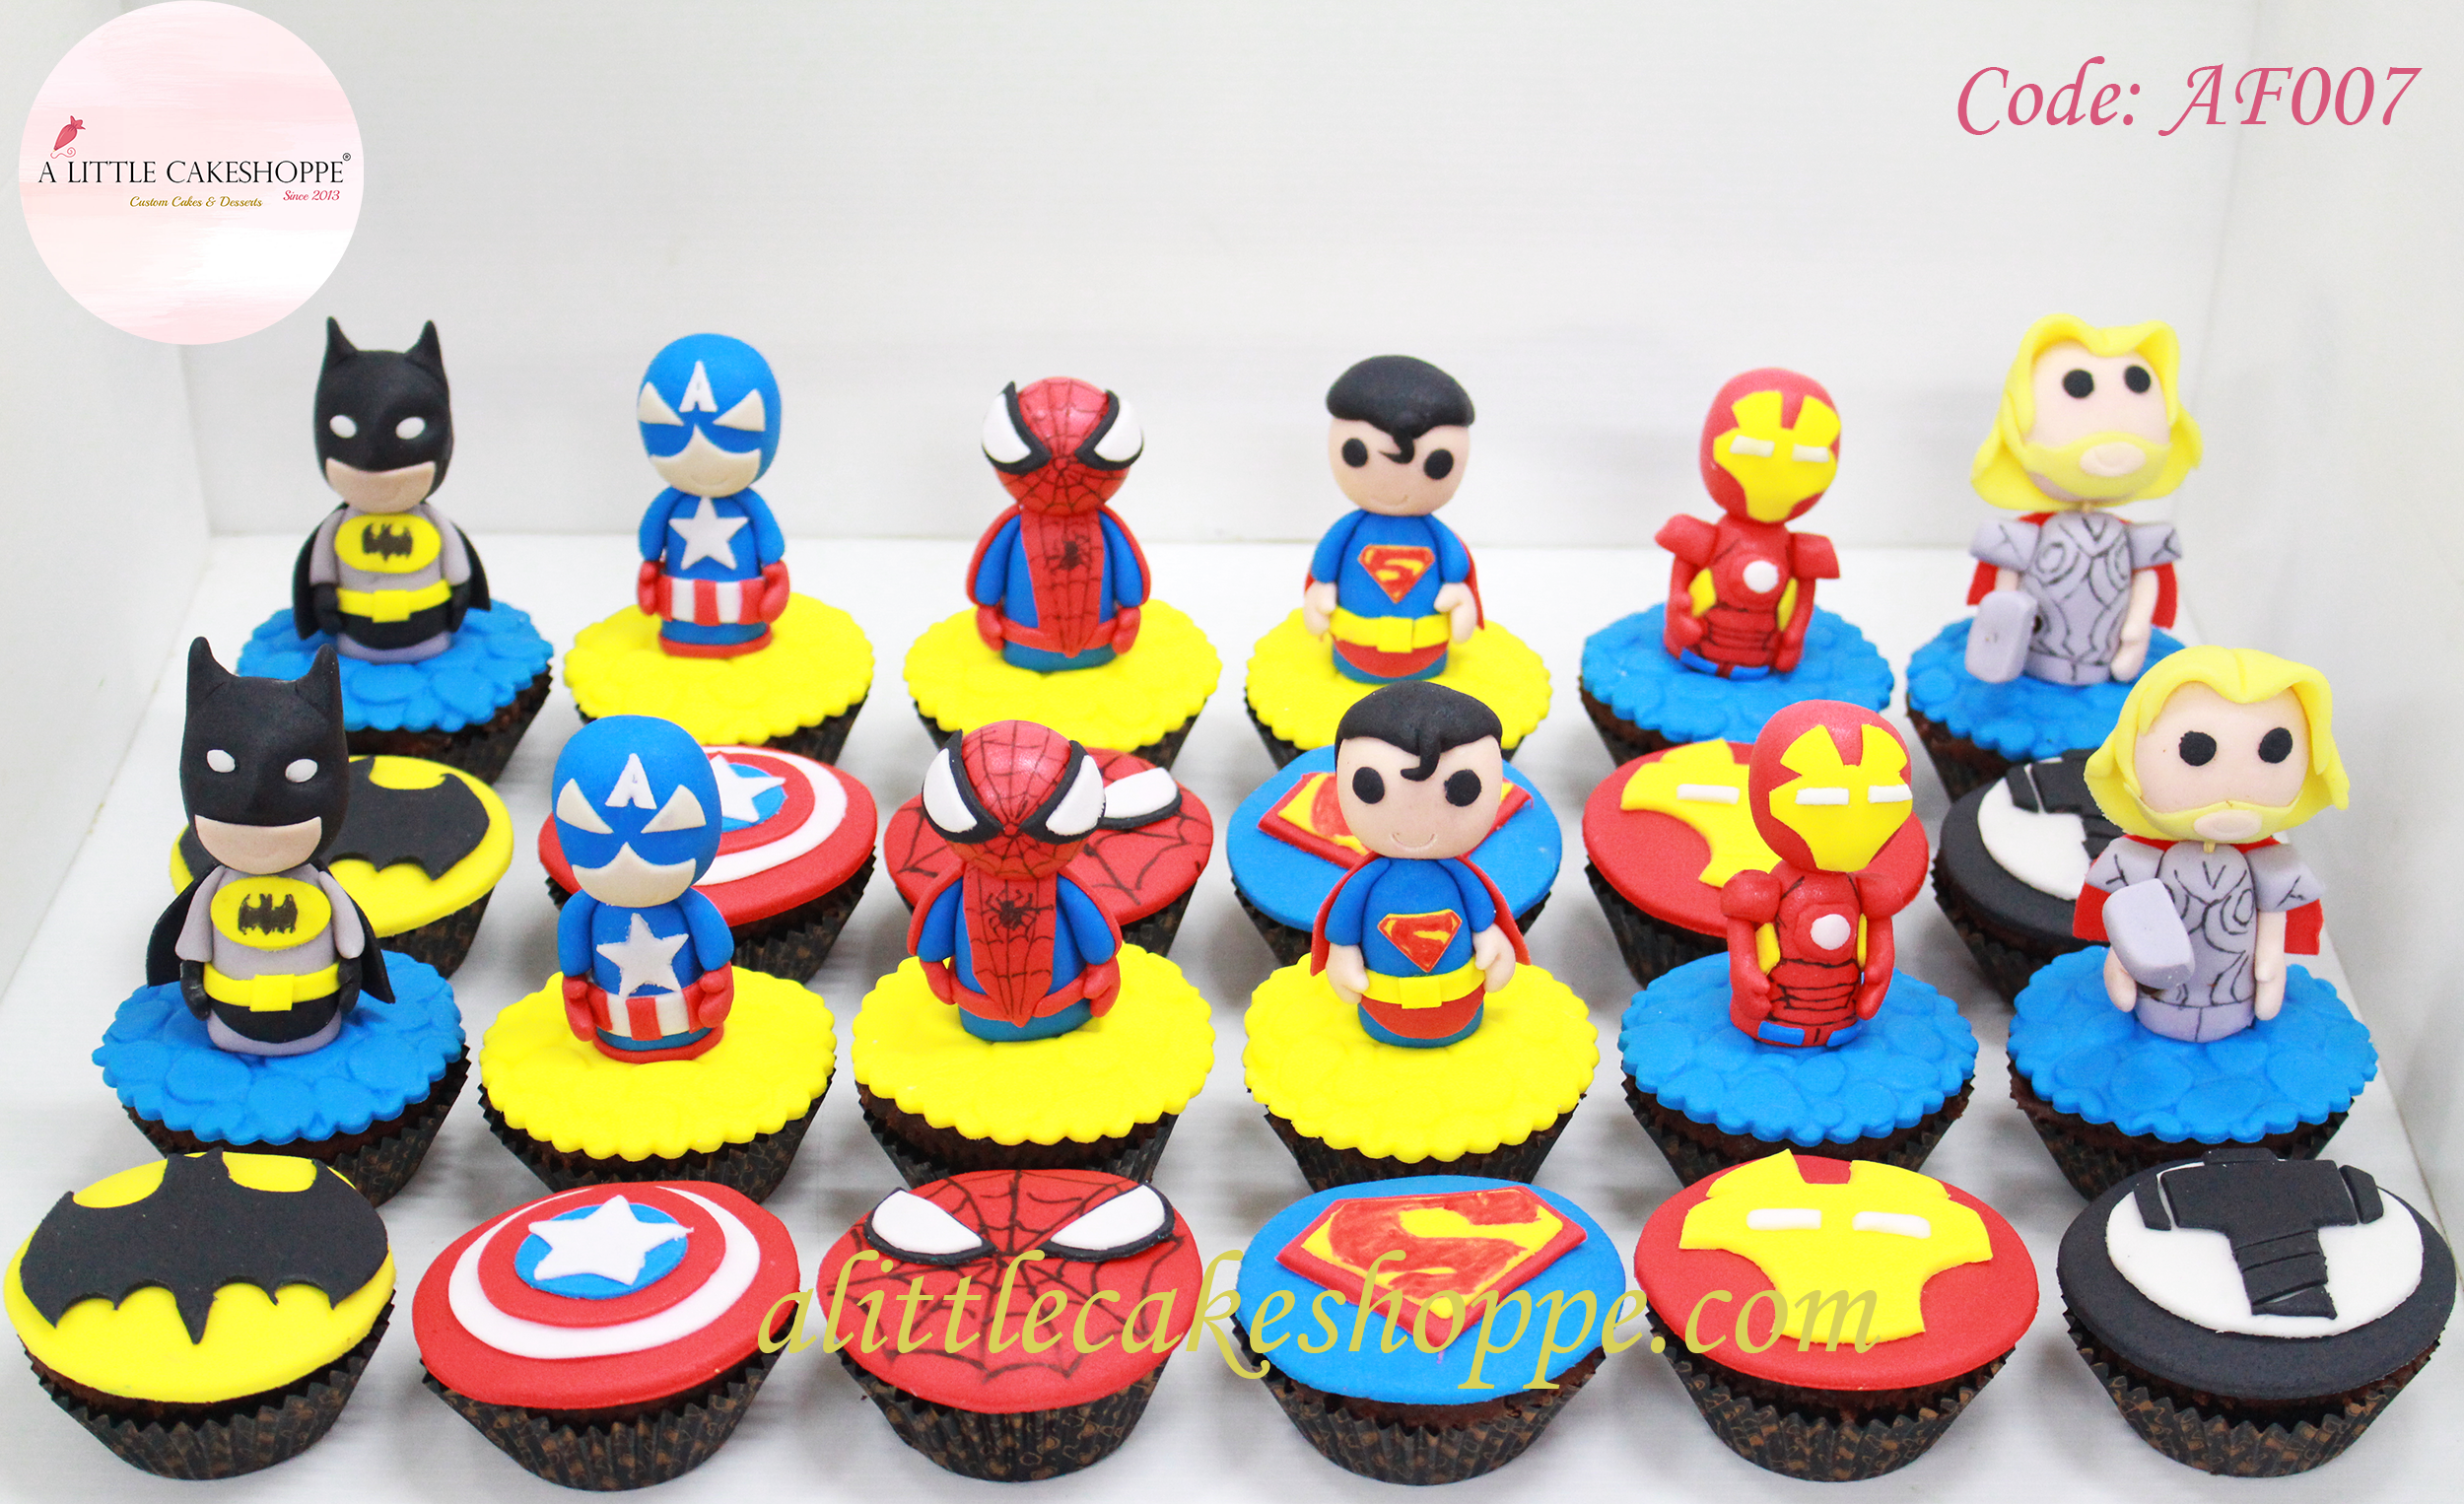 Best Customised Cake Shop Singapore custom cake 2D 3D birthday cake cupcakes desserts wedding corporate events anniversary 1st birthday 21st birthday fondant fresh cream buttercream cakes alittlecakeshoppe a little cake shoppe compliments review singapore bakers SG cake shop cakeshop ah beng who bakes super hero avengers dc hero batman captain america spiderman superman ironman thor